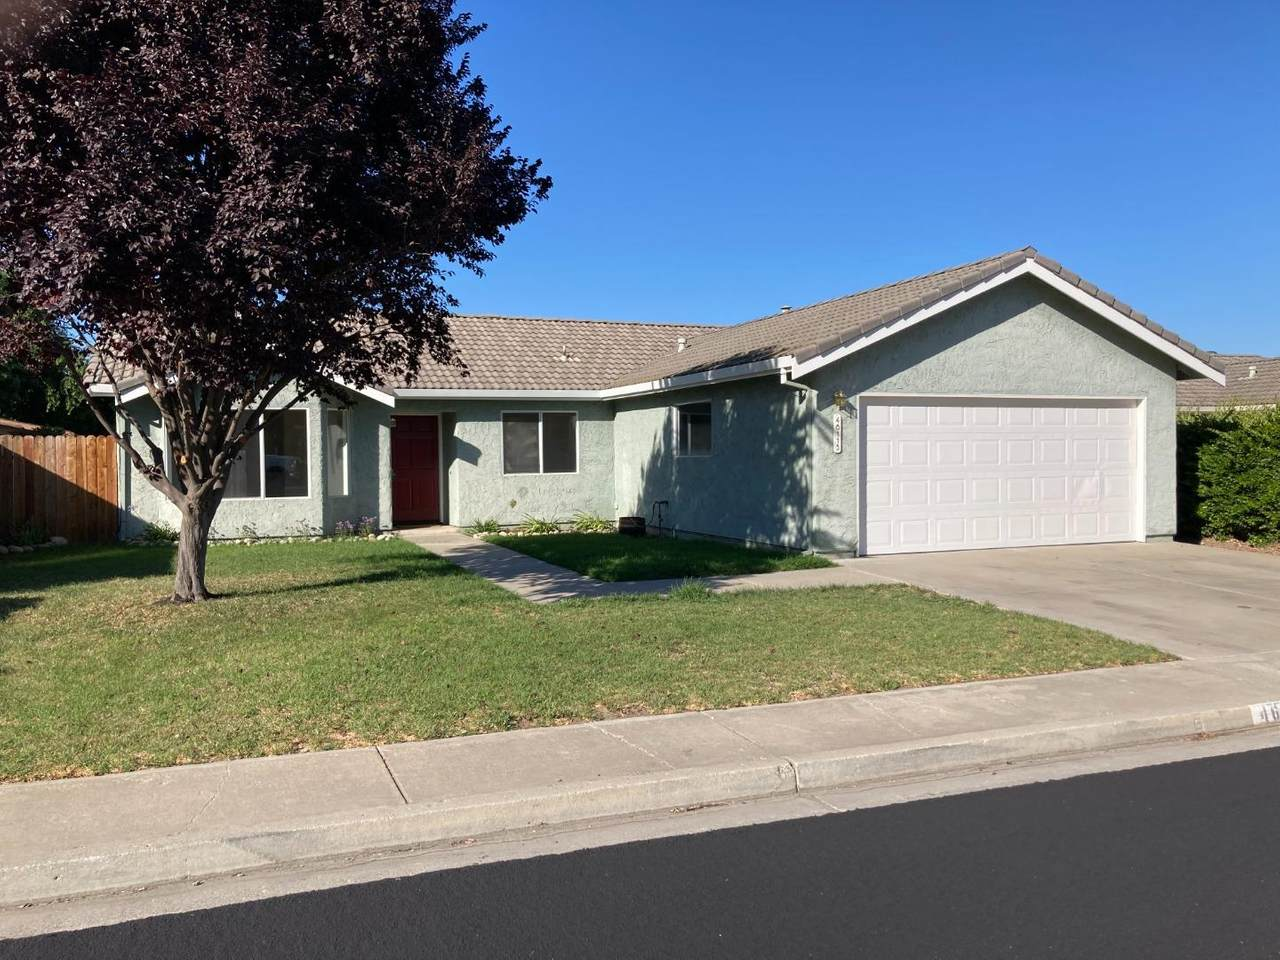 46115 Pine Meadow Dr - Photo 1